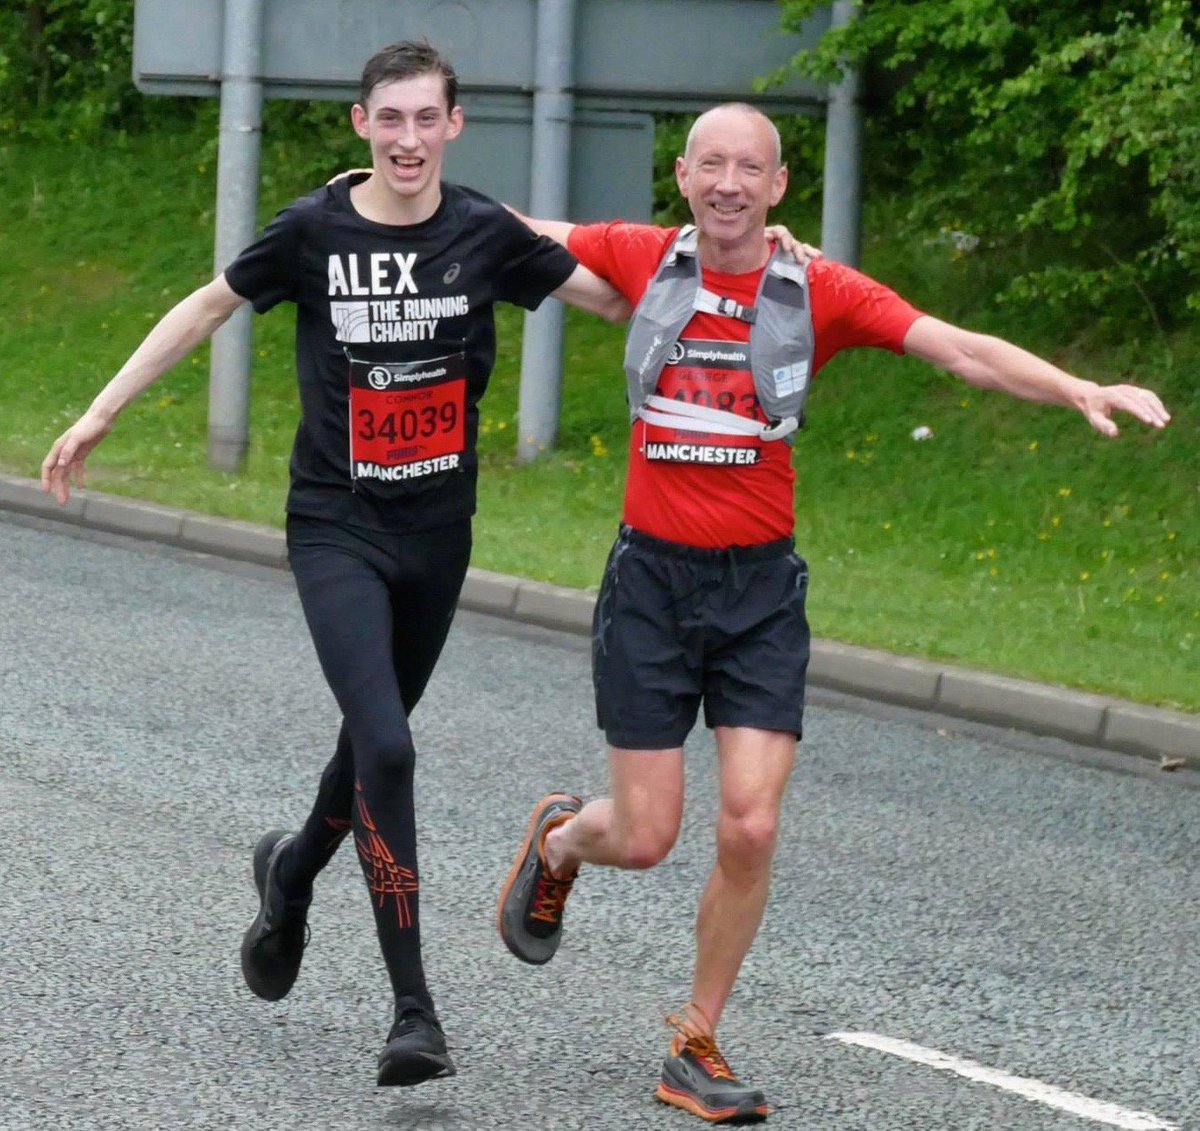 Alex and George reaching the finishing line